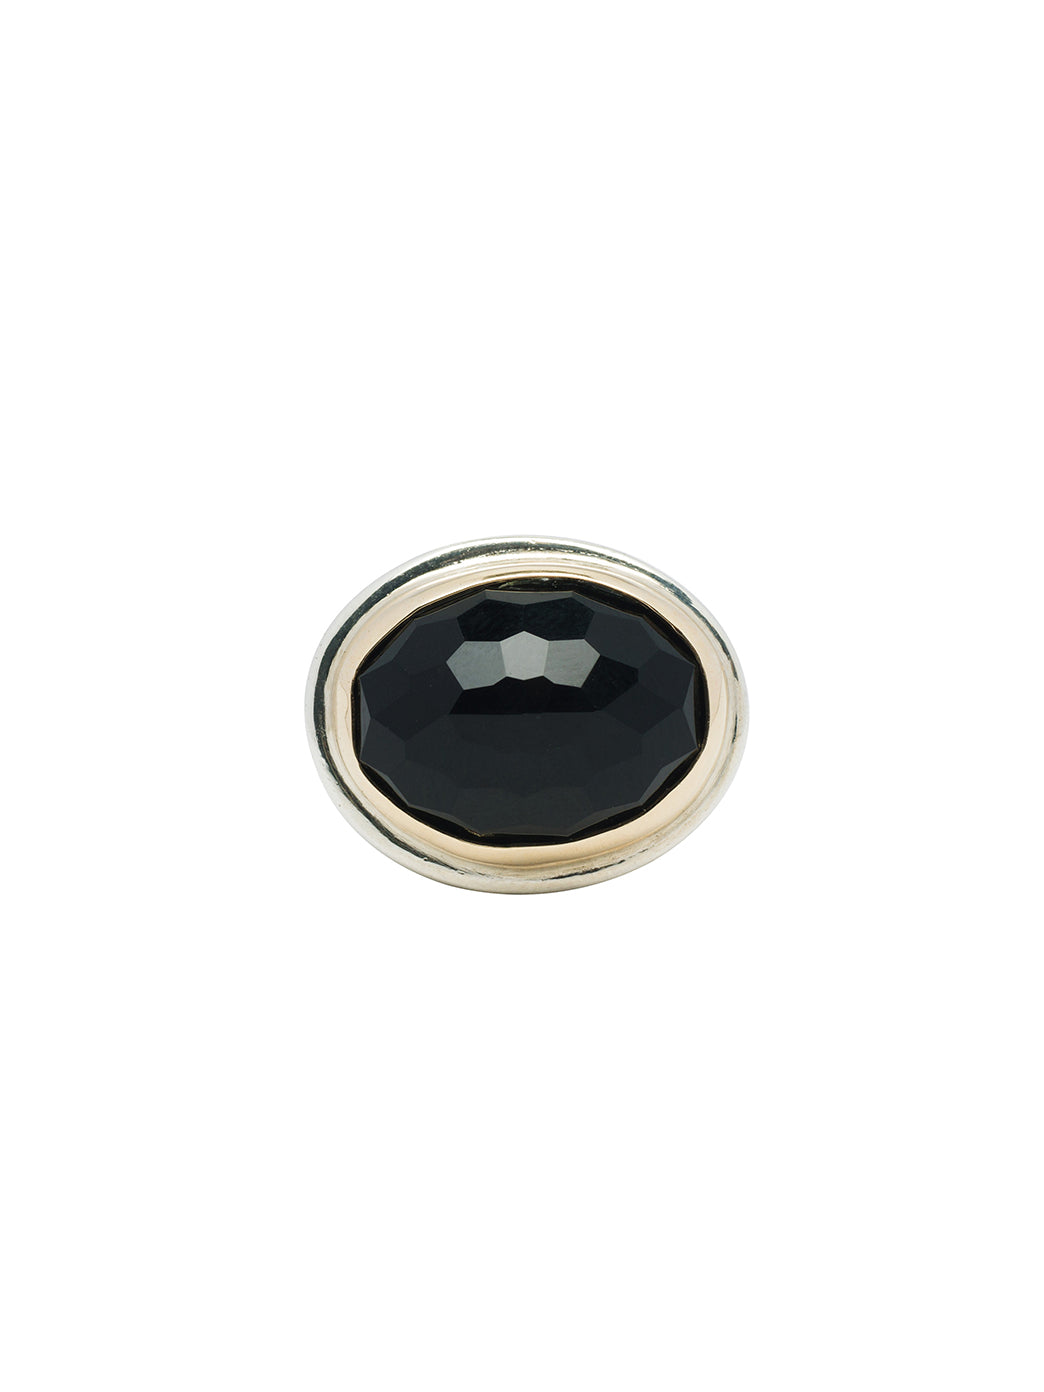 Fiorina Jewellery Bullseye Ring Black Onyx